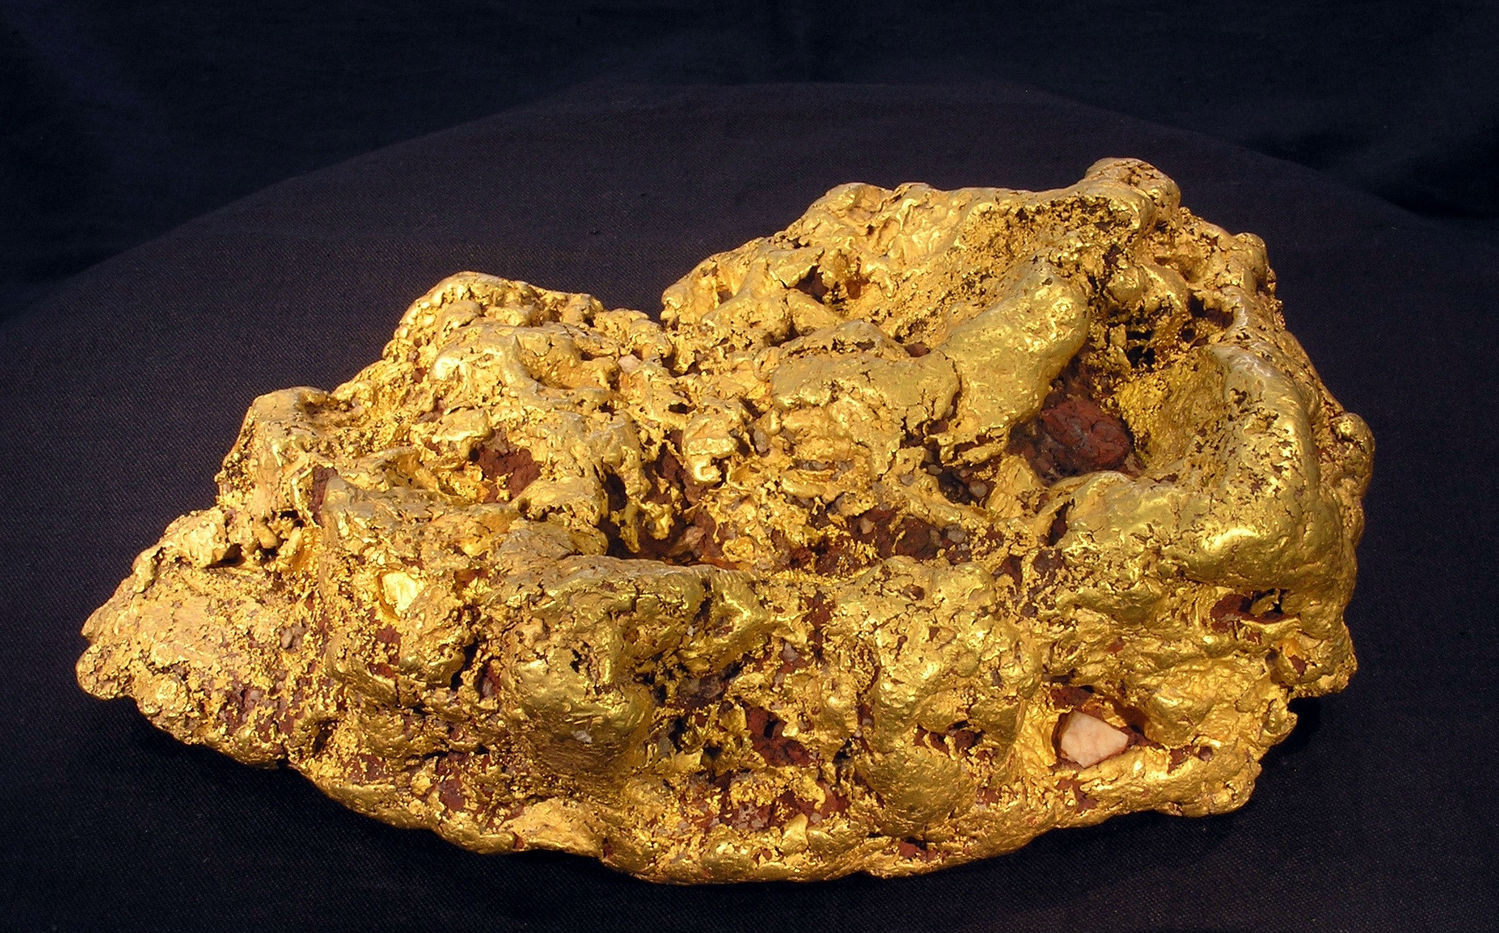 What is a sample of gold